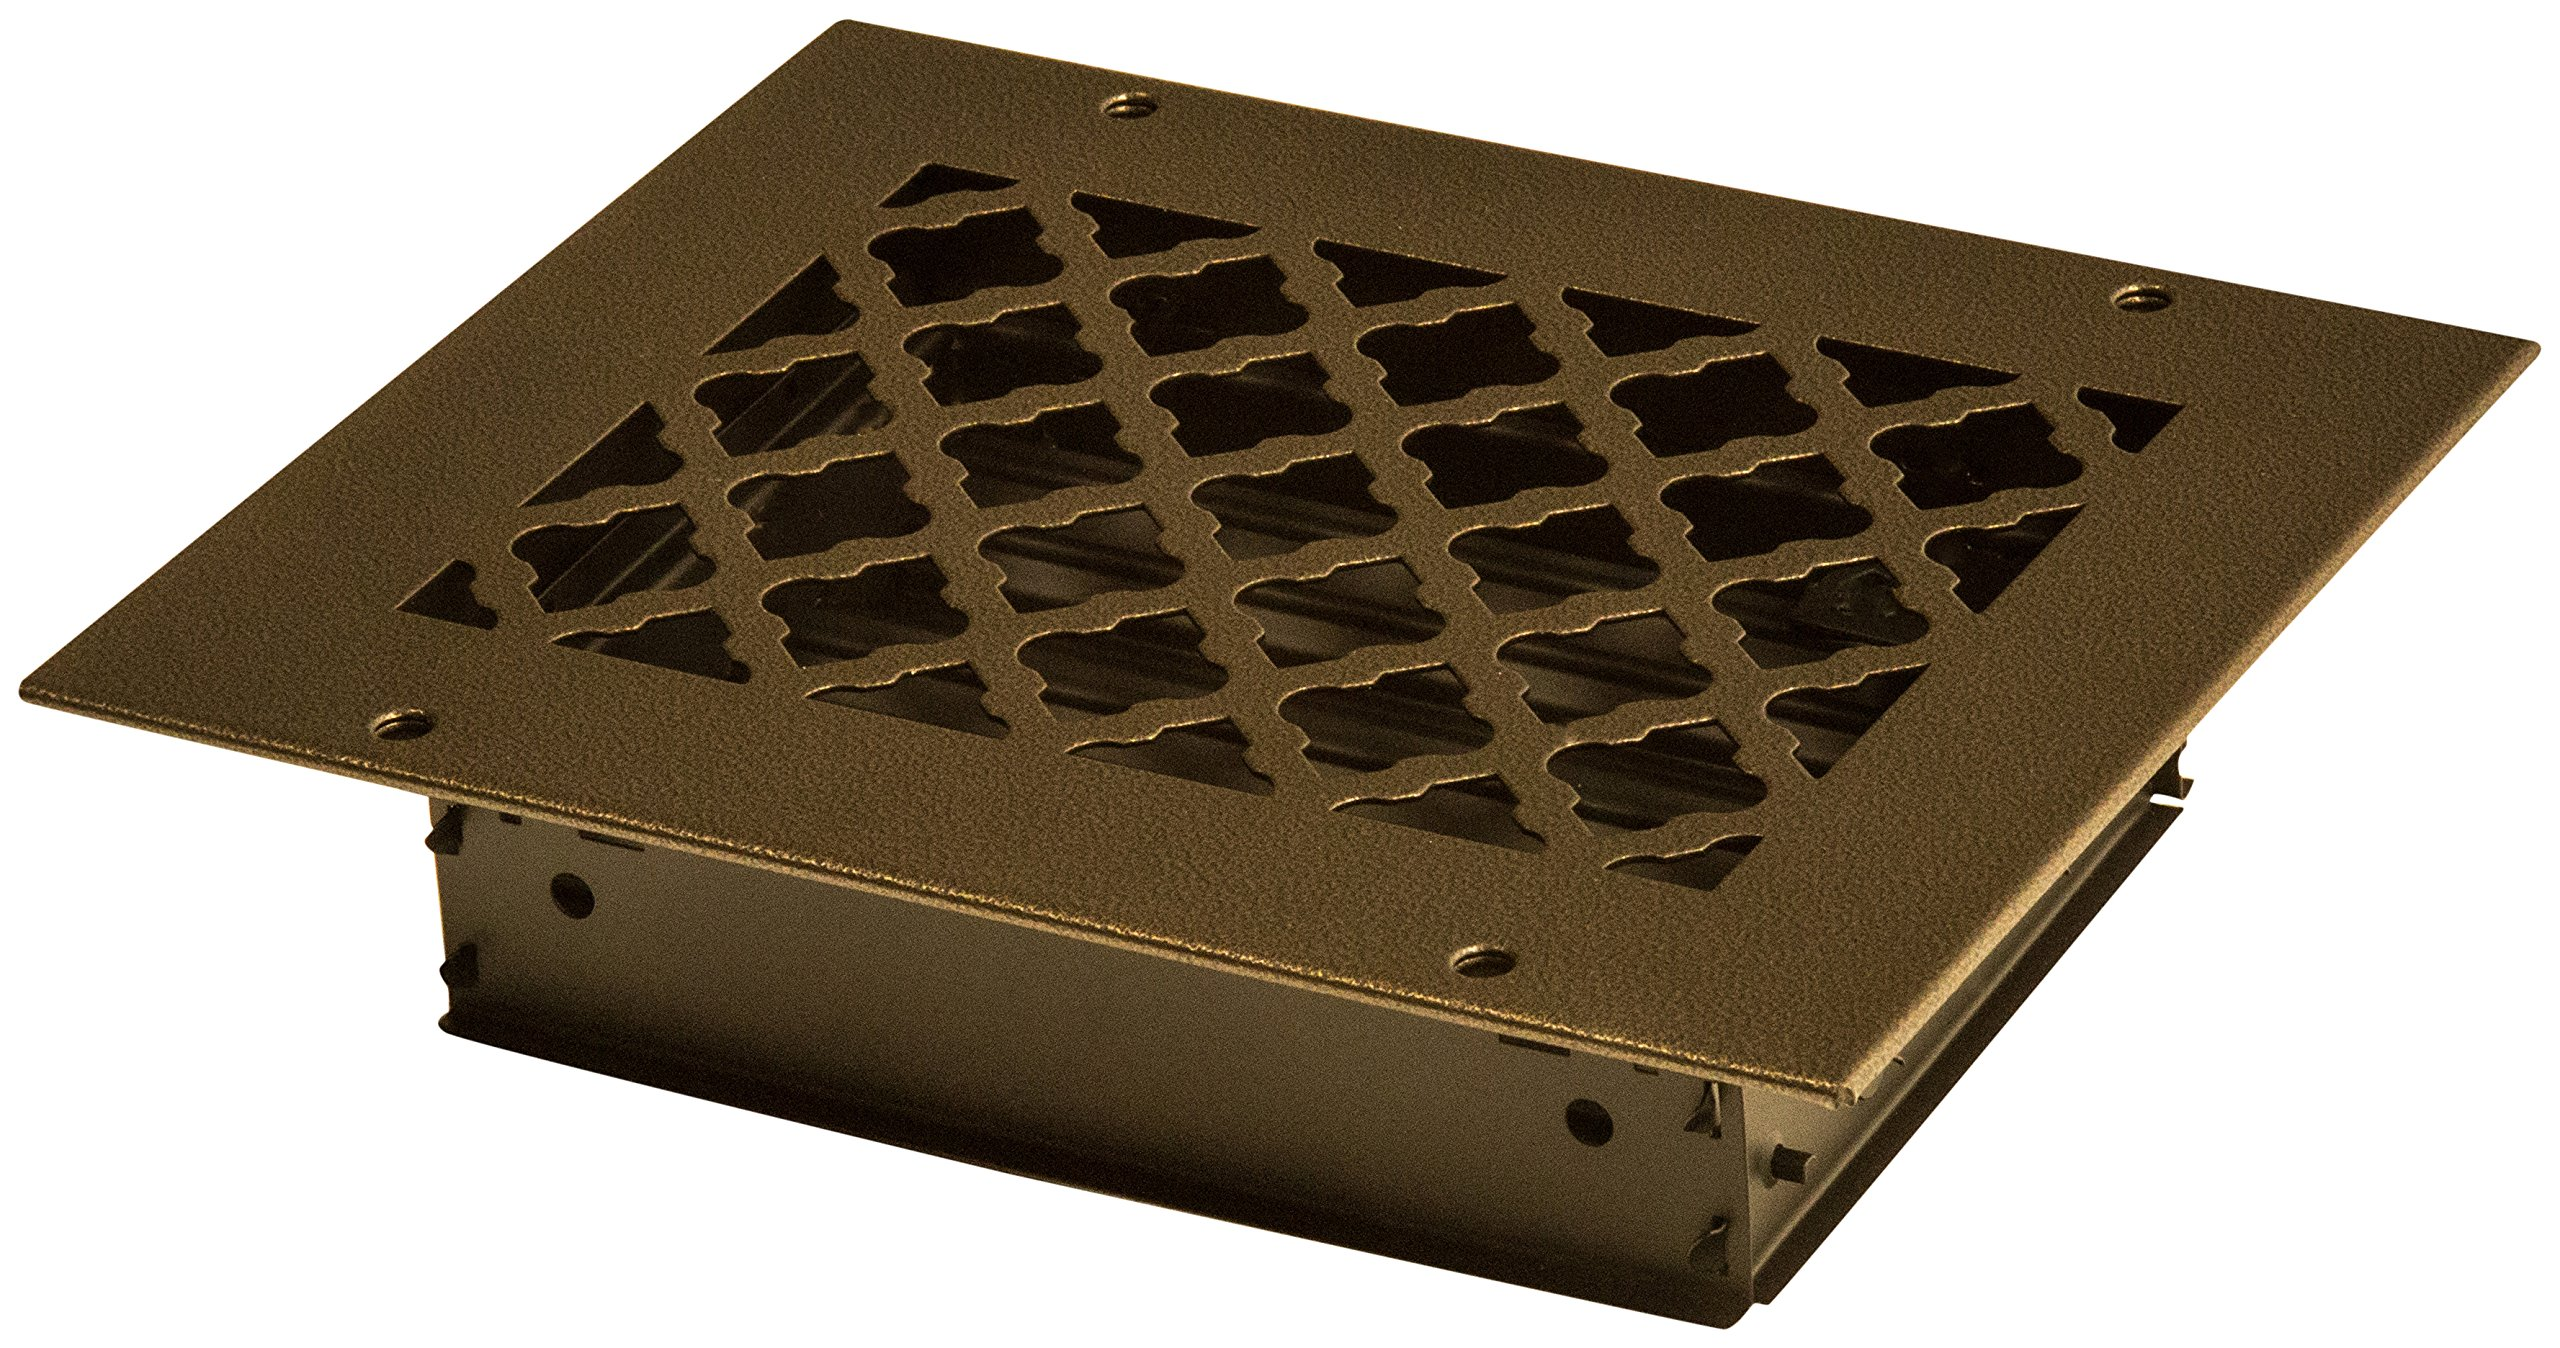 SteelCrest BTU8X6SORBH Bronze Series Designer Wall/Ceiling Vent Cover, with Air-Volume Damper, and Mounting Screws, Oil Rubbed Bronze by SteelCrest